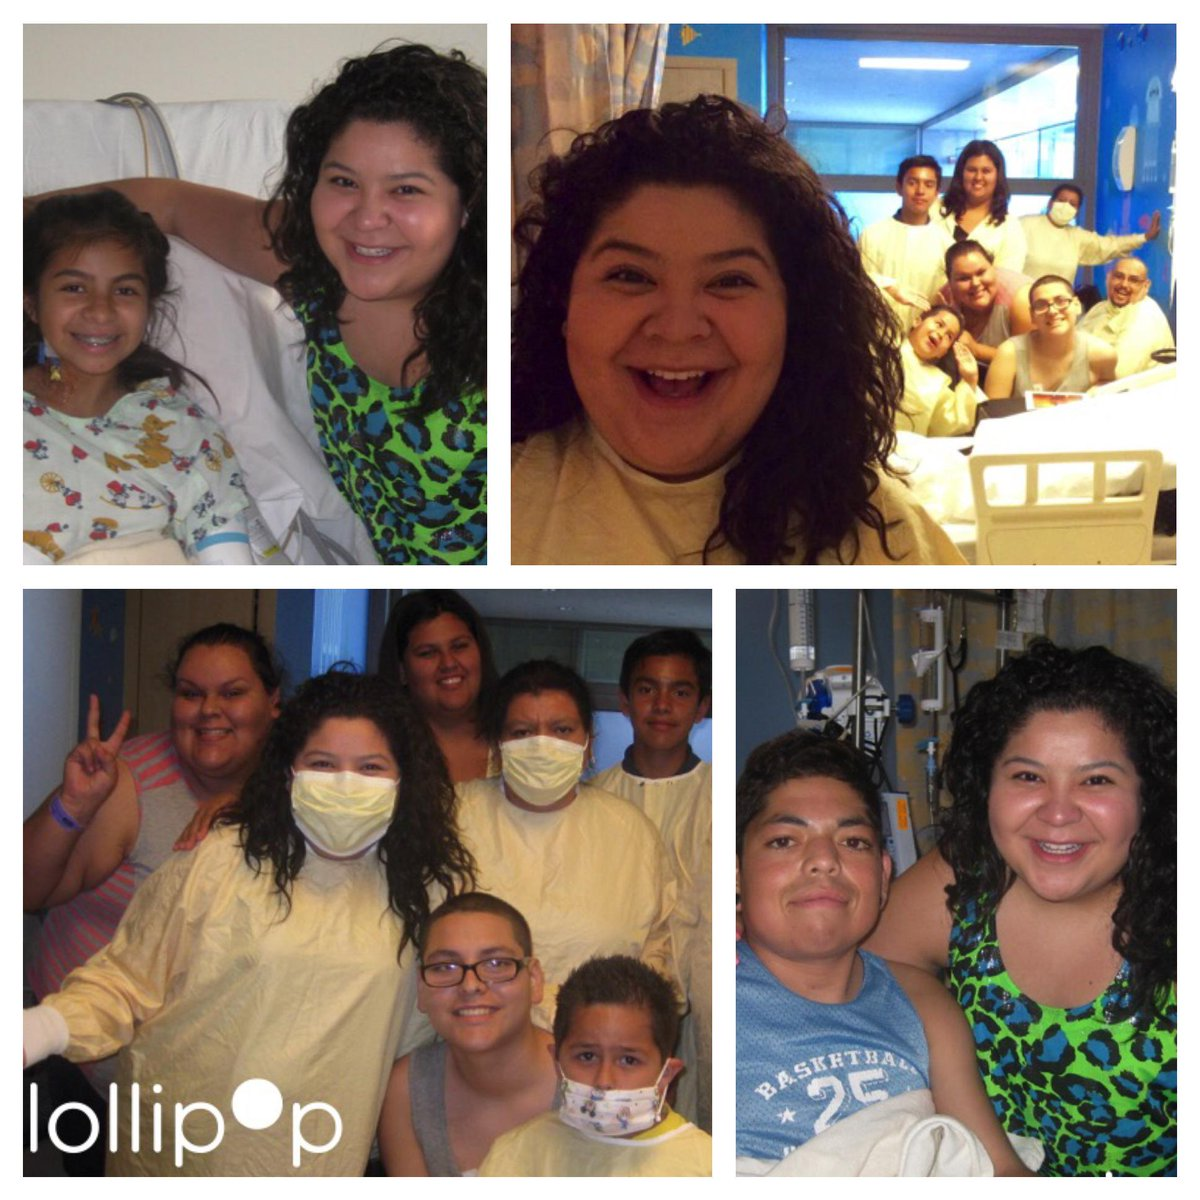 THROWBACK to @Raini_Rodriguez's @UCLAHealth visit last week! The kids watched her movie Paul Blart: Mall Cop 2! #TBT http://t.co/kek4czH8ik